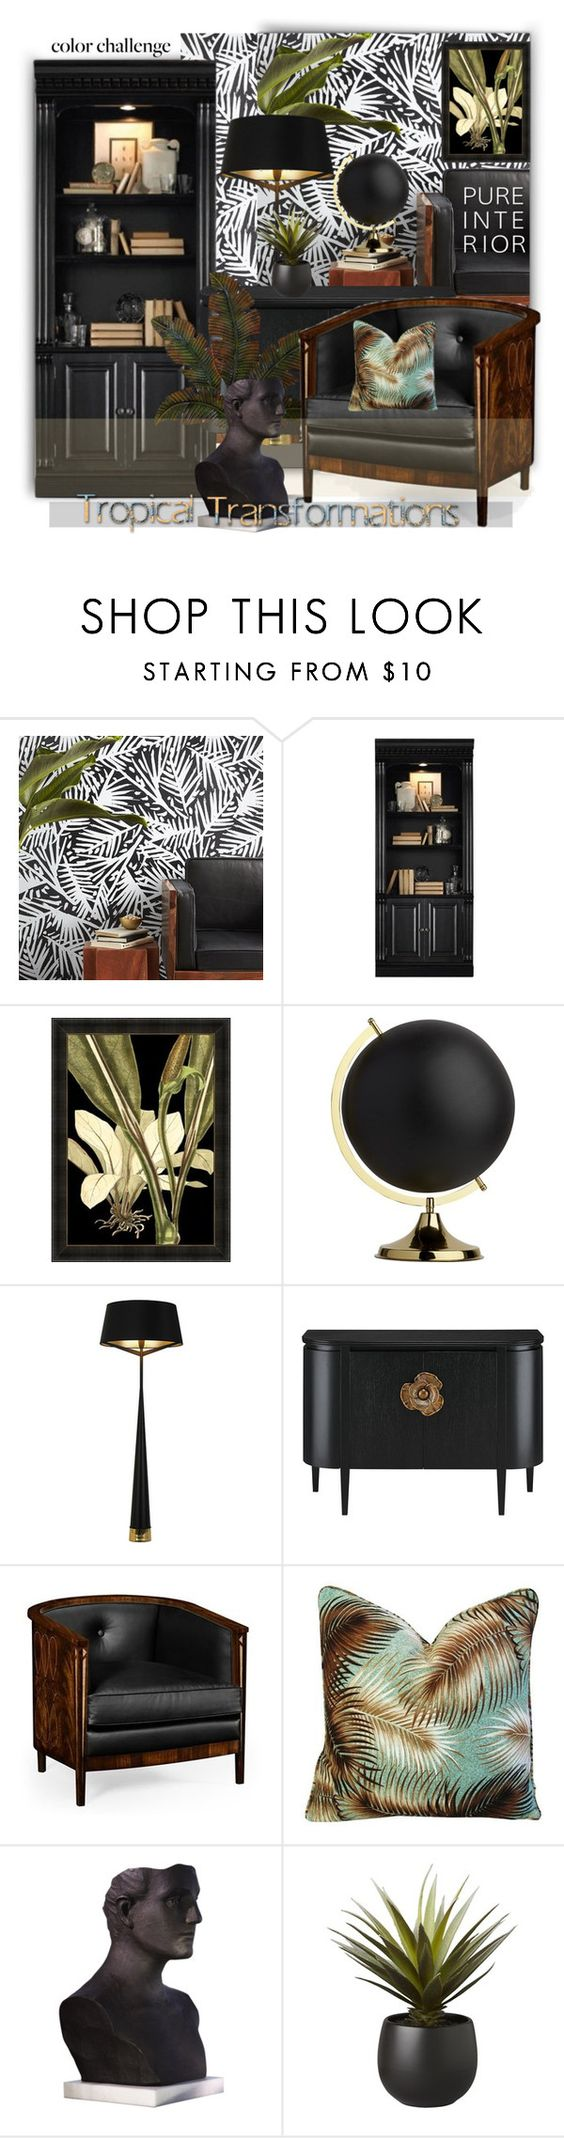 """""""Black Themed Tropical Interior Desigm"""" by esch103 ❤ liked on Polyvore featuring interior, interiors, interior design, home, home decor, interior decorating, CB2, Hooker Furniture, Jonathan Charles Fine Furniture and Global Views"""